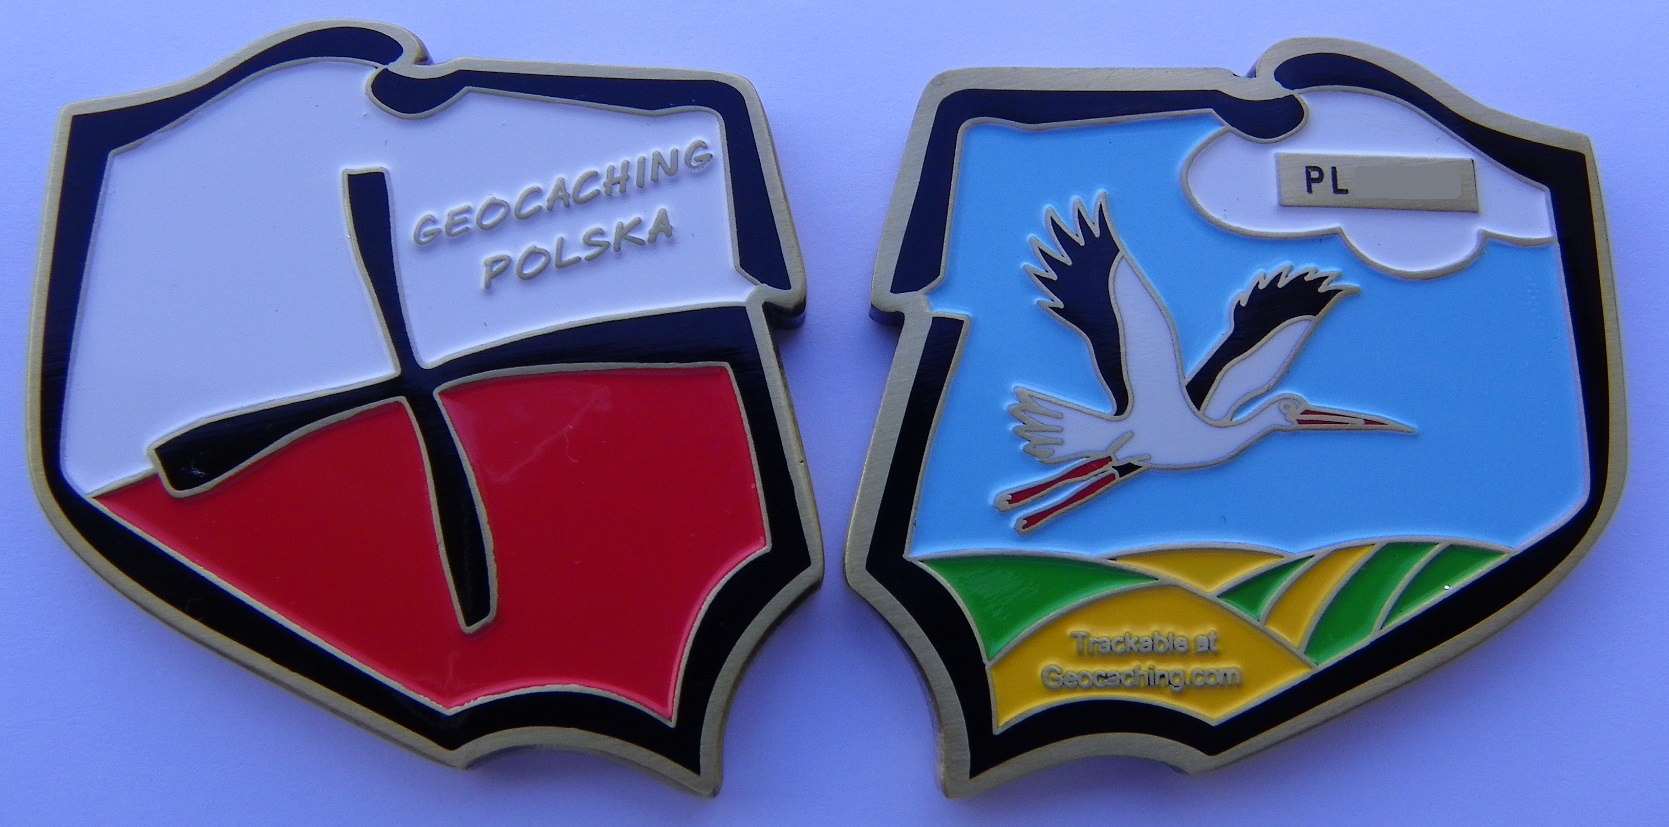 www.abditus.eu_Geocaching_Polska_Geocoin_White_Stork_2014_Antique_bronze.jpg